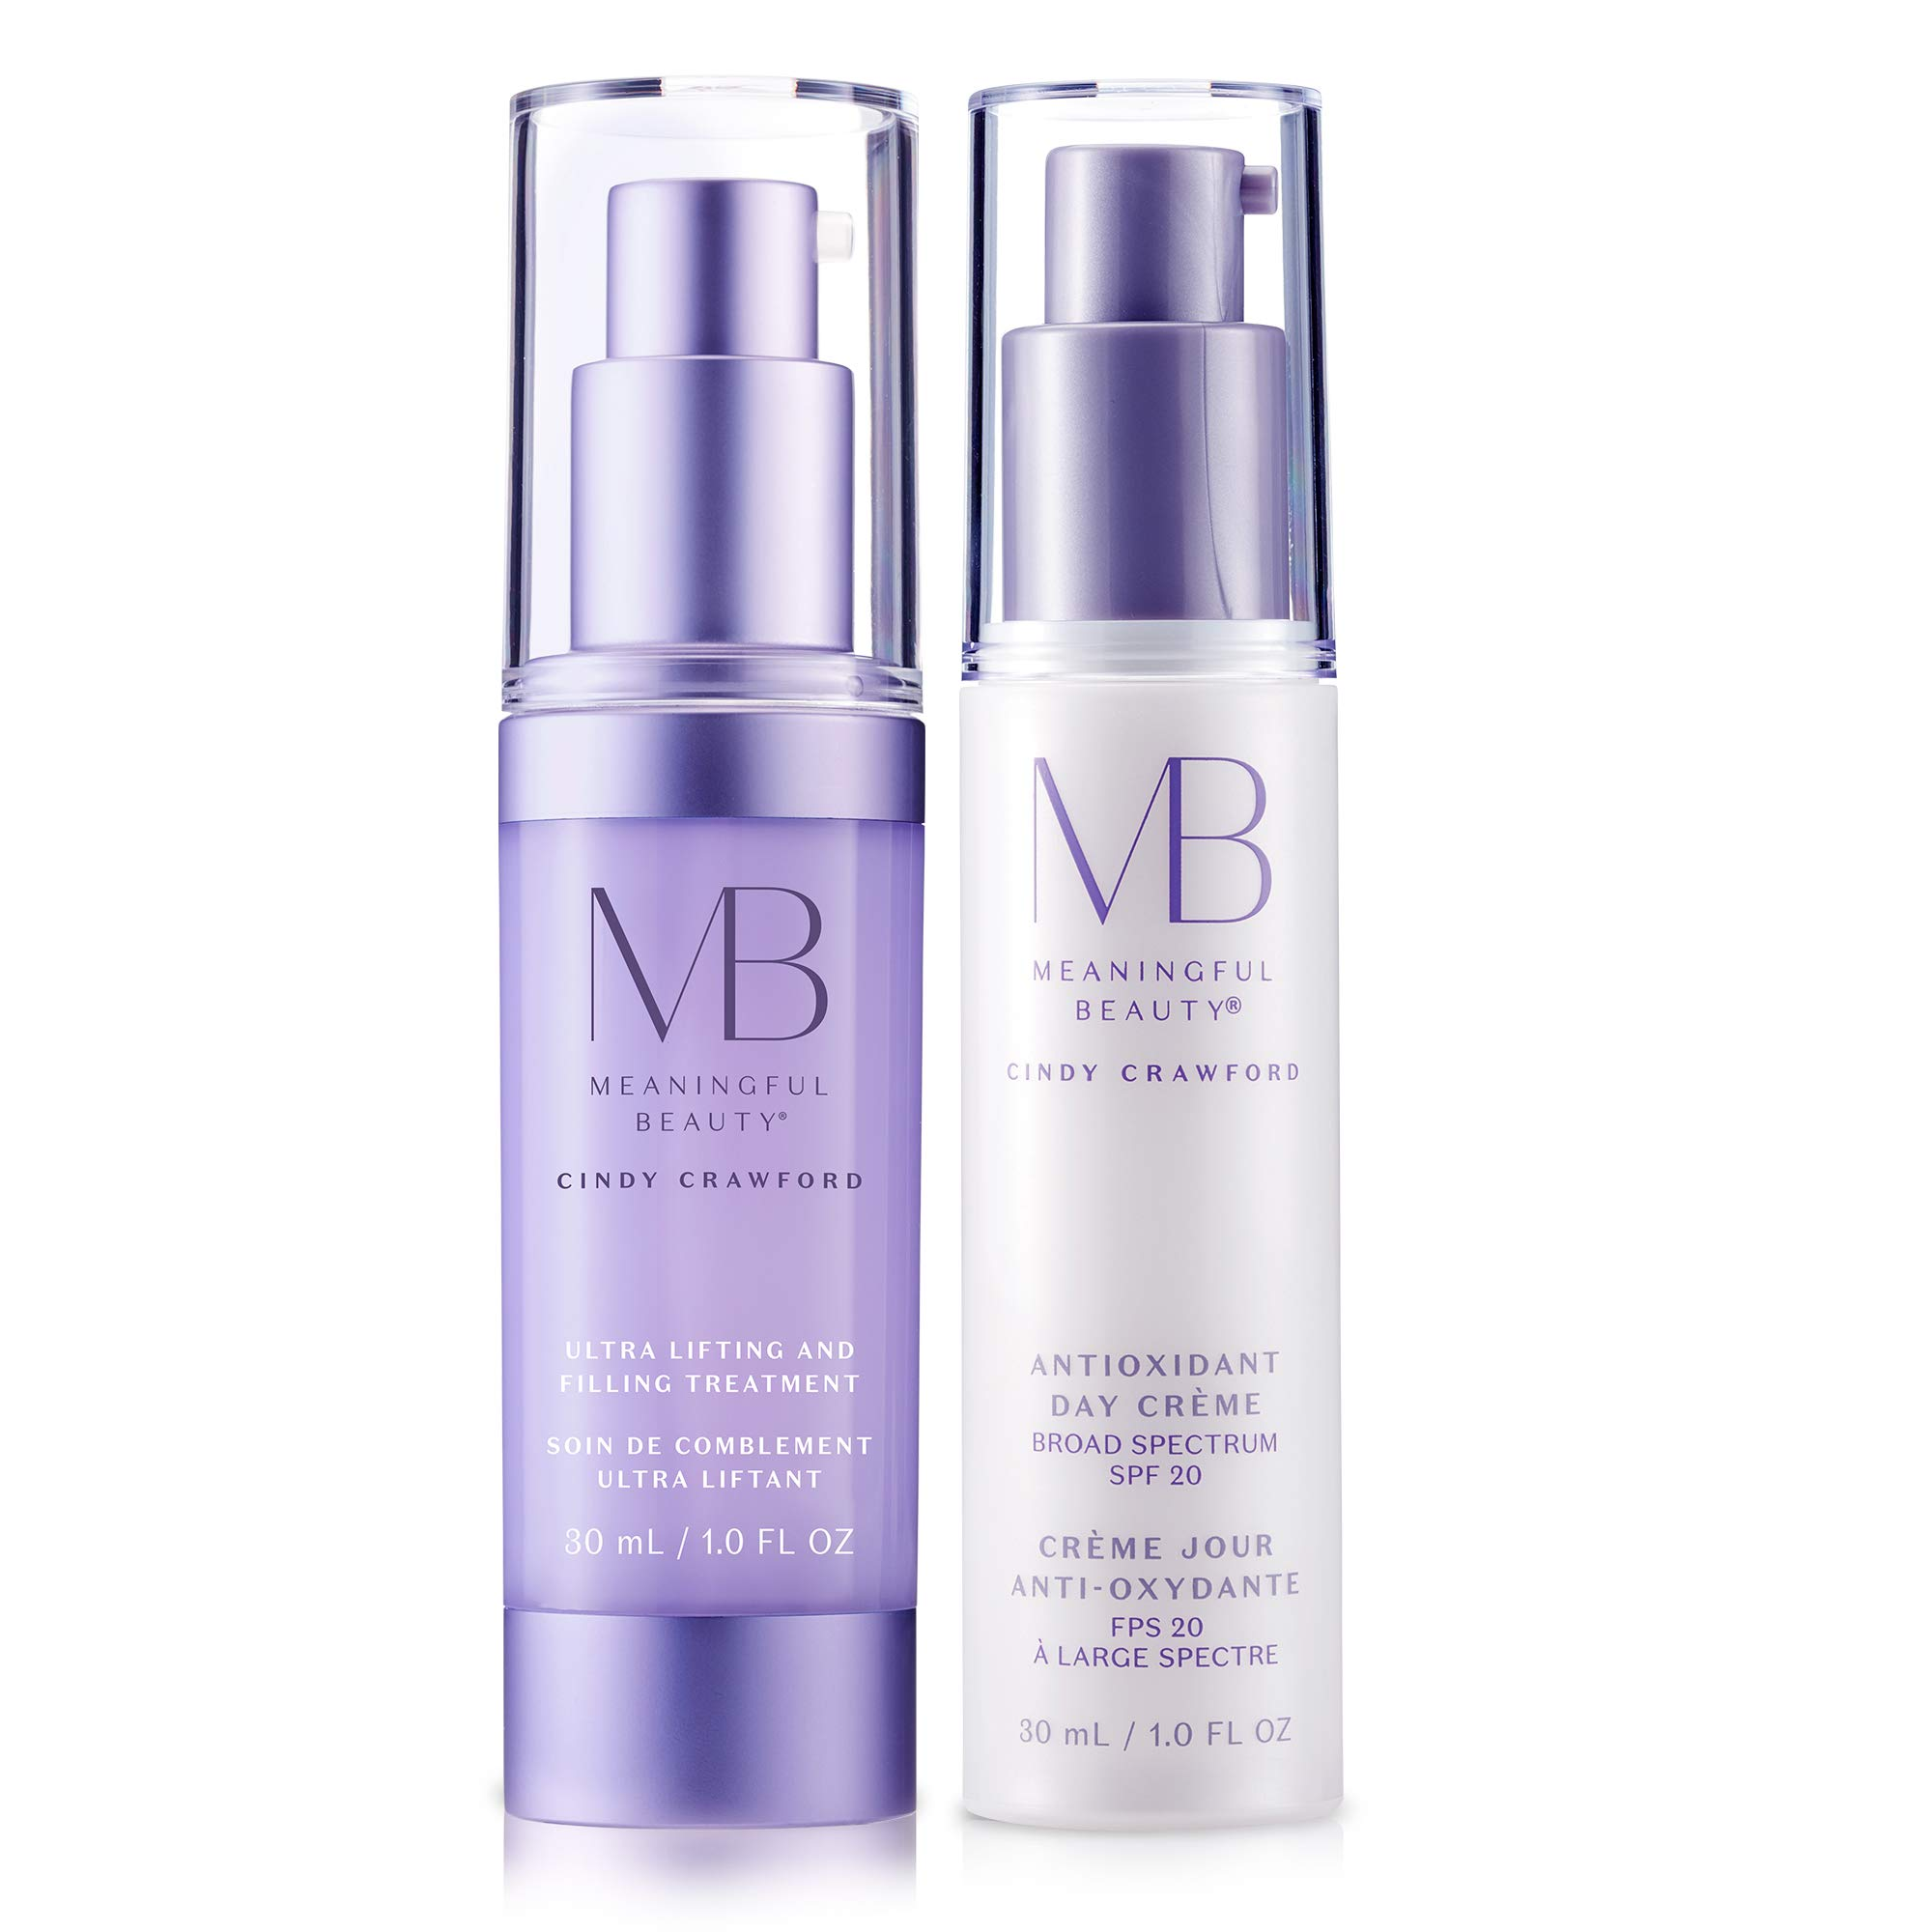 Meaningful Beauty - Renewing Day Protection System - for Firming and Radiance - 2 Piece Kit - MT.2060